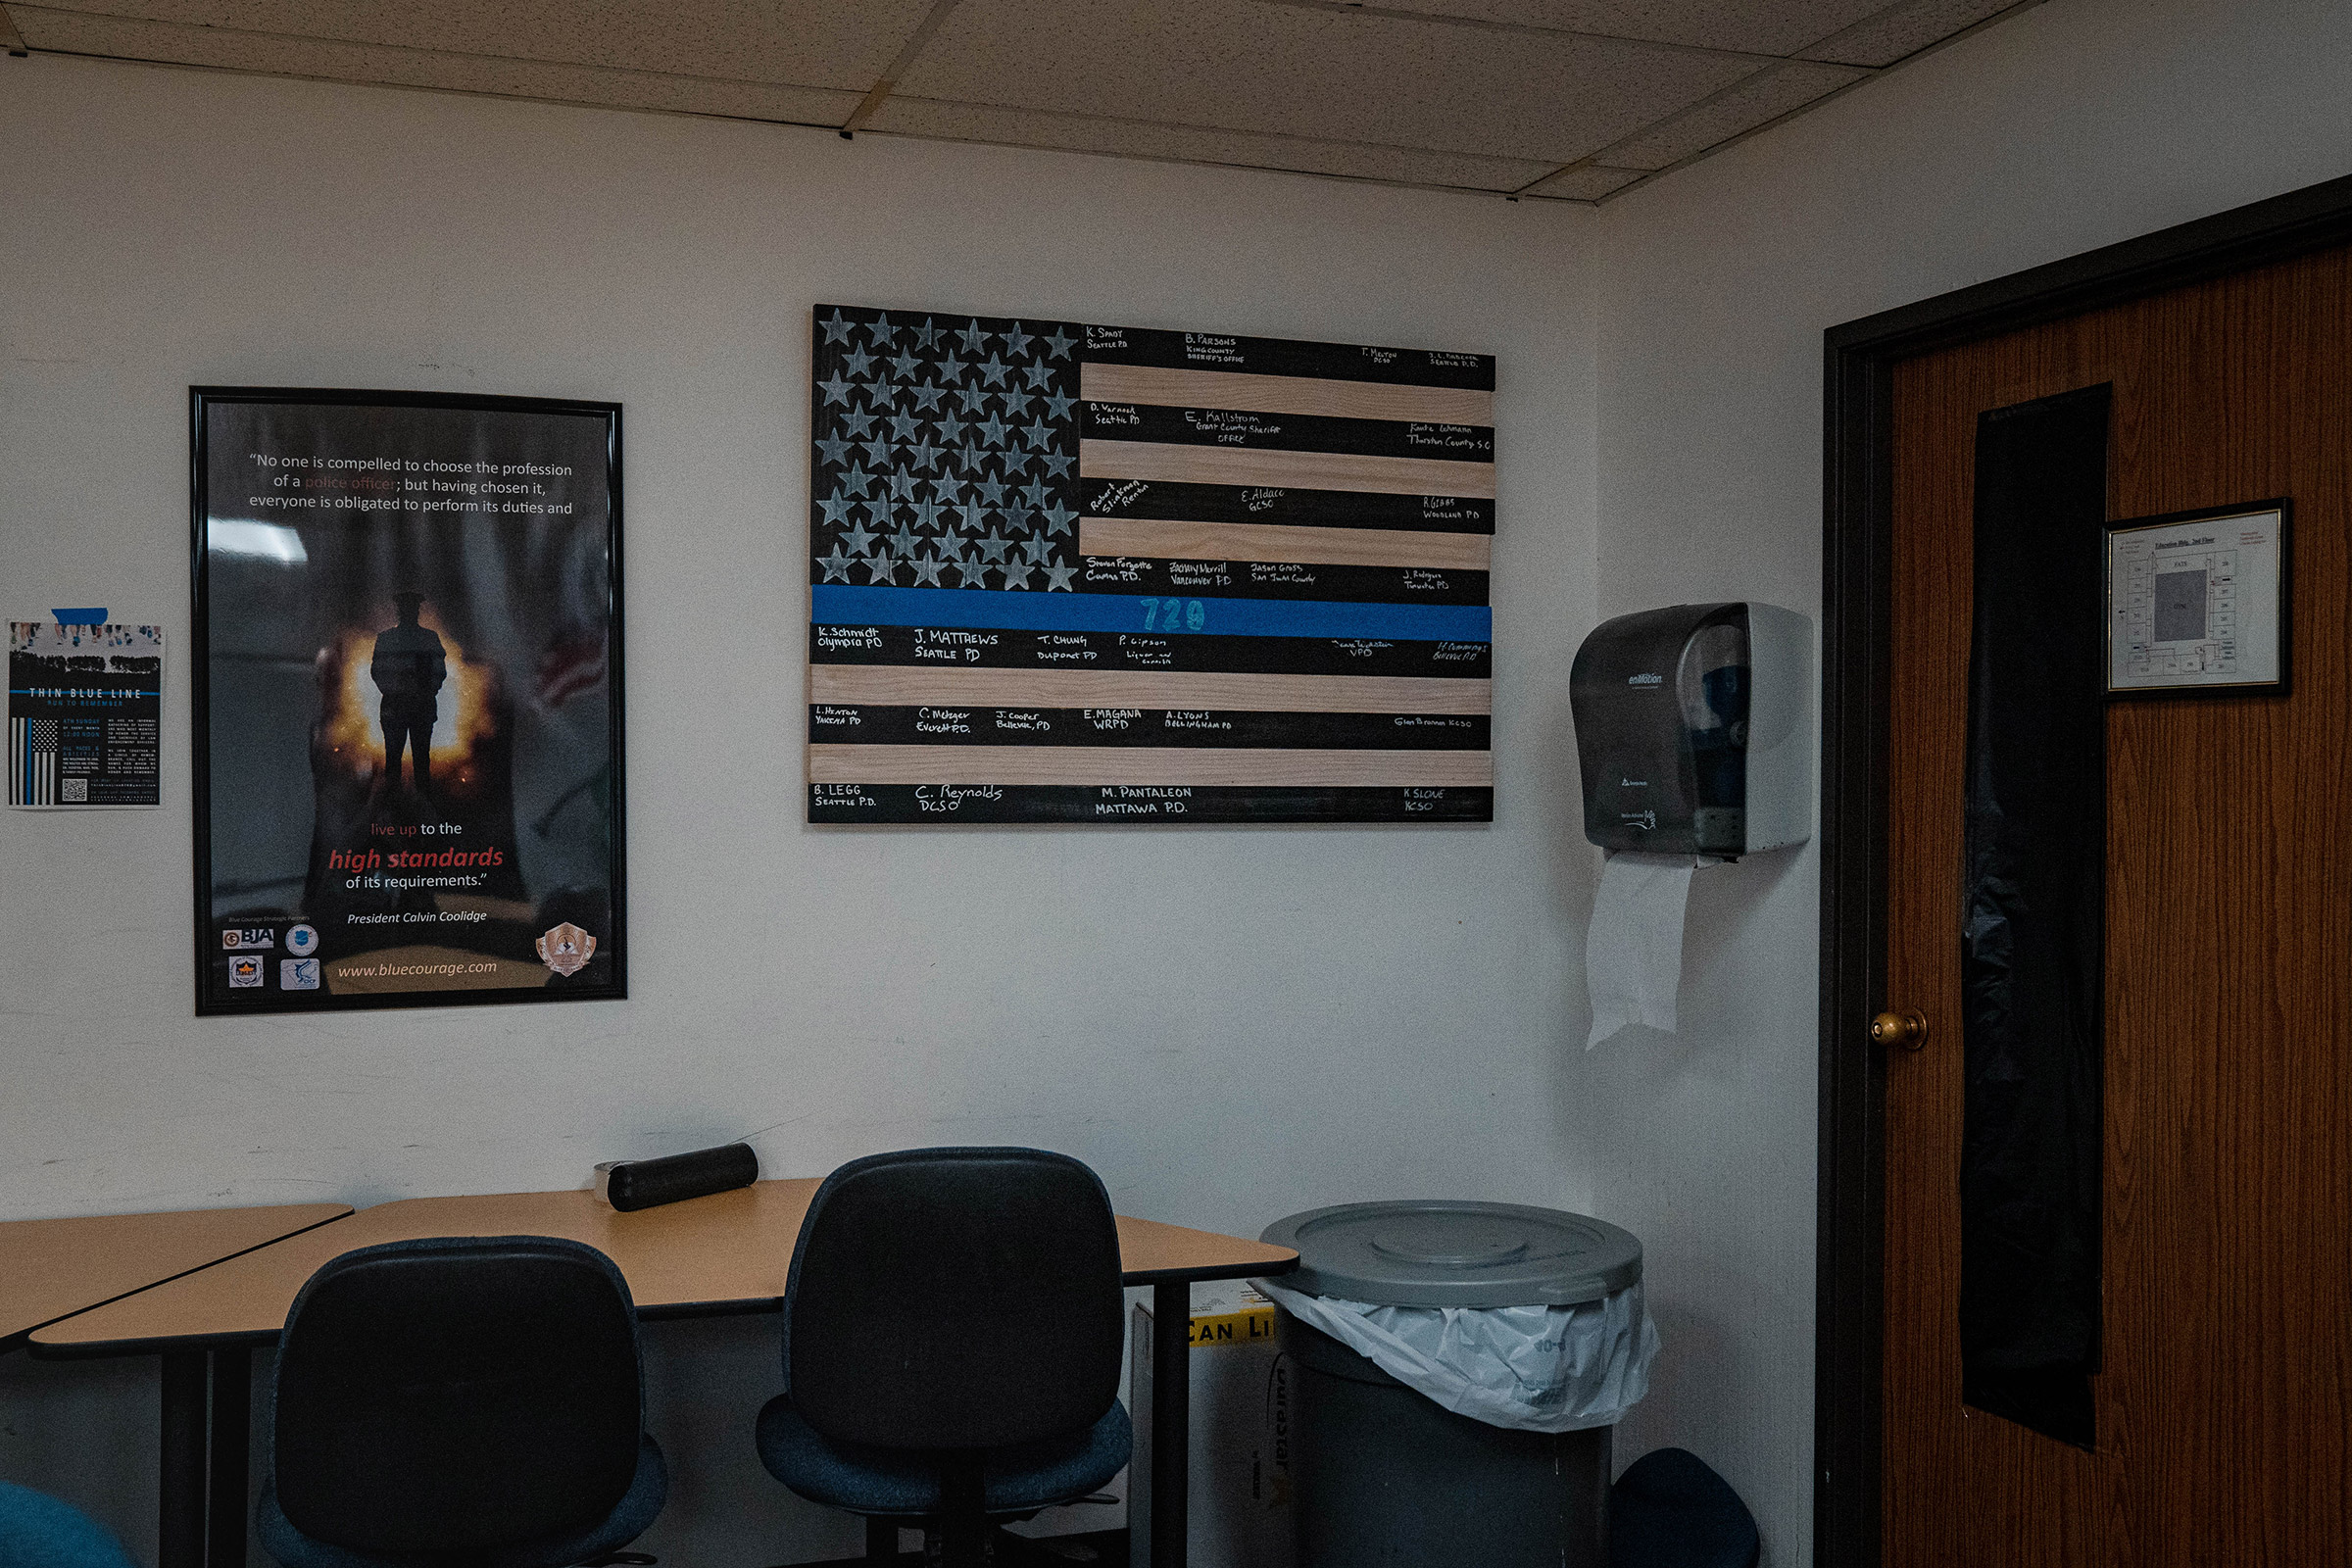 A thin blue line flag poster on display in an out-of-use classroom.